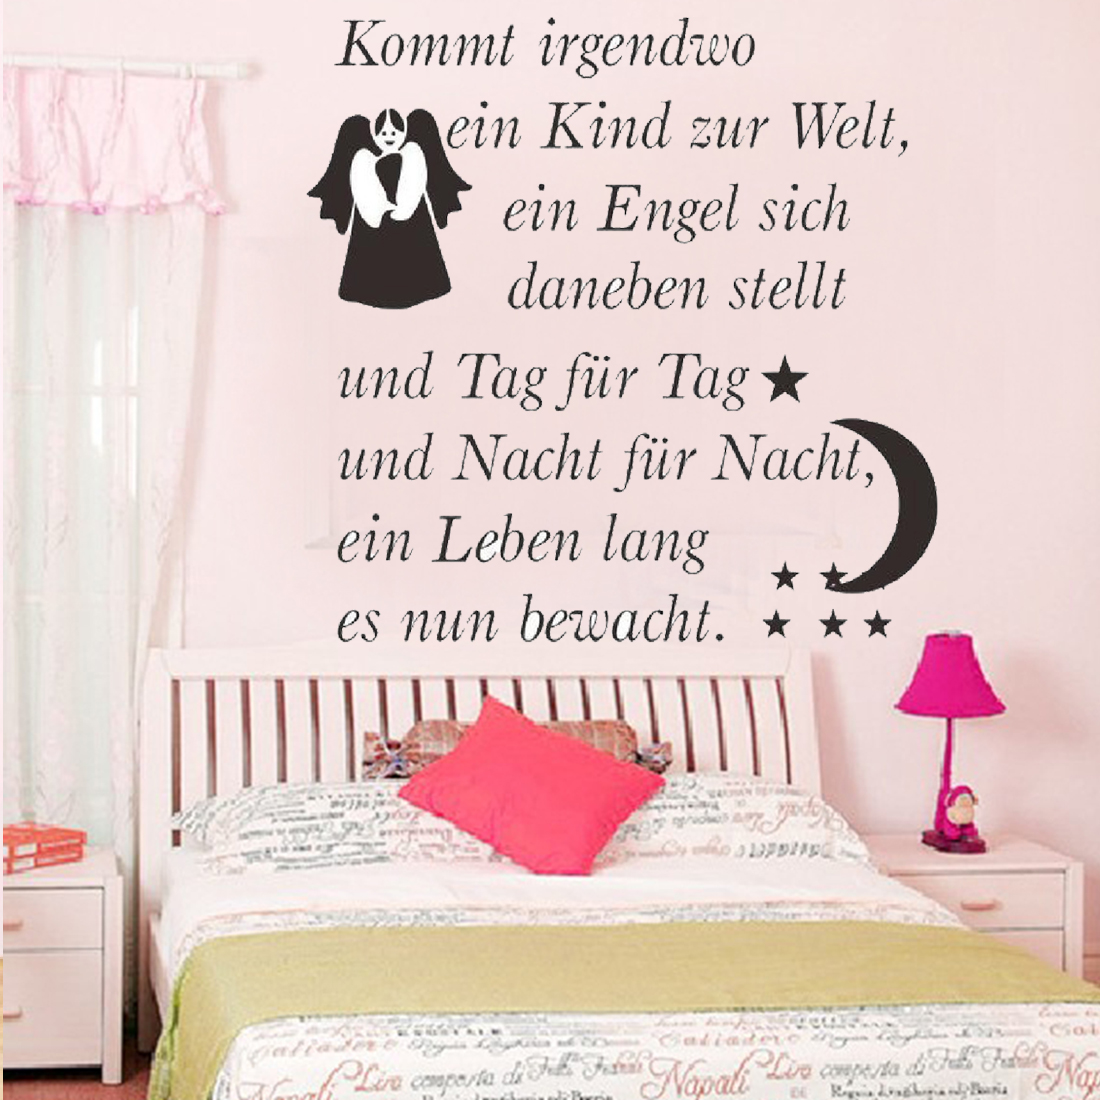 new hot sale diy removable wallpaper german kommt letters wall stickers kids home decoration